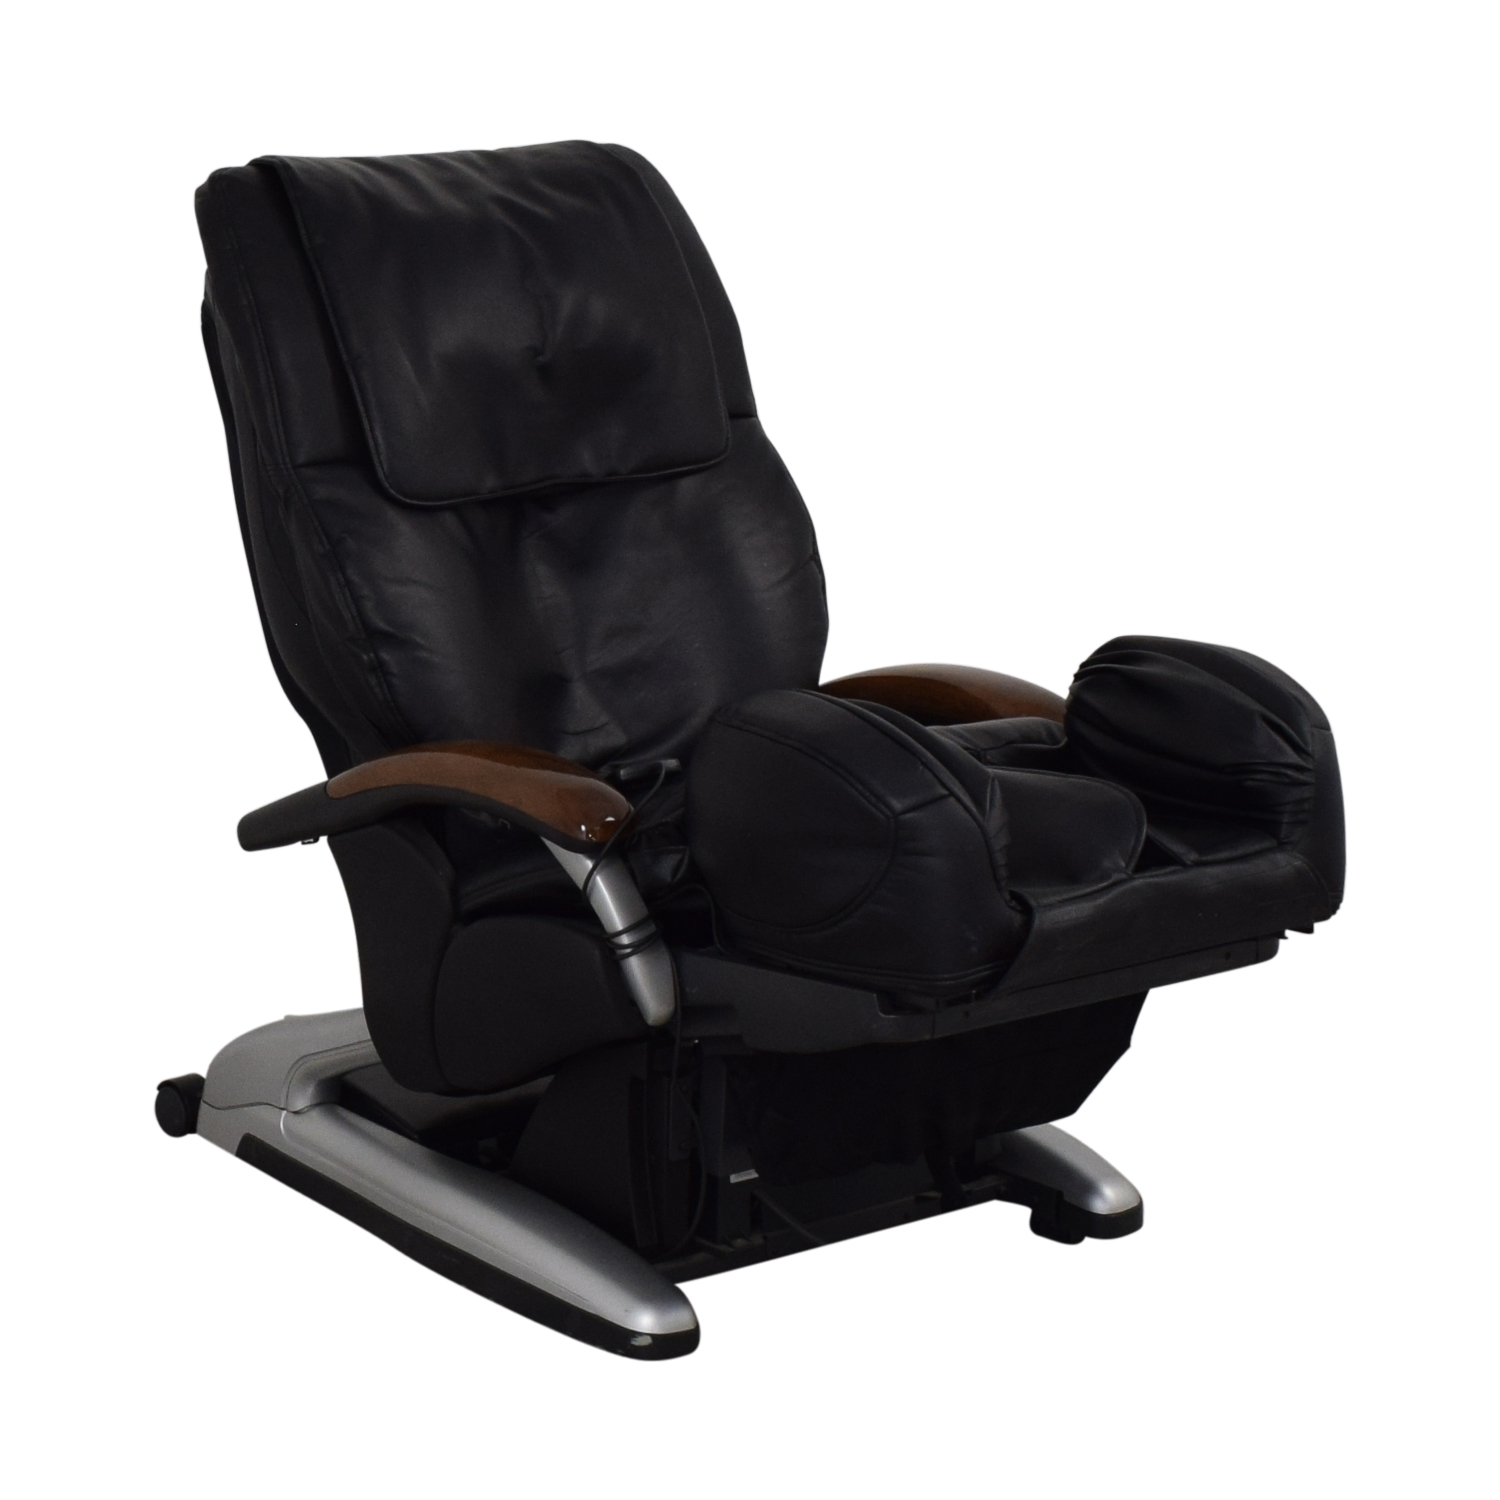 Brookstone Brookstone Massage Chair with CD Player discount